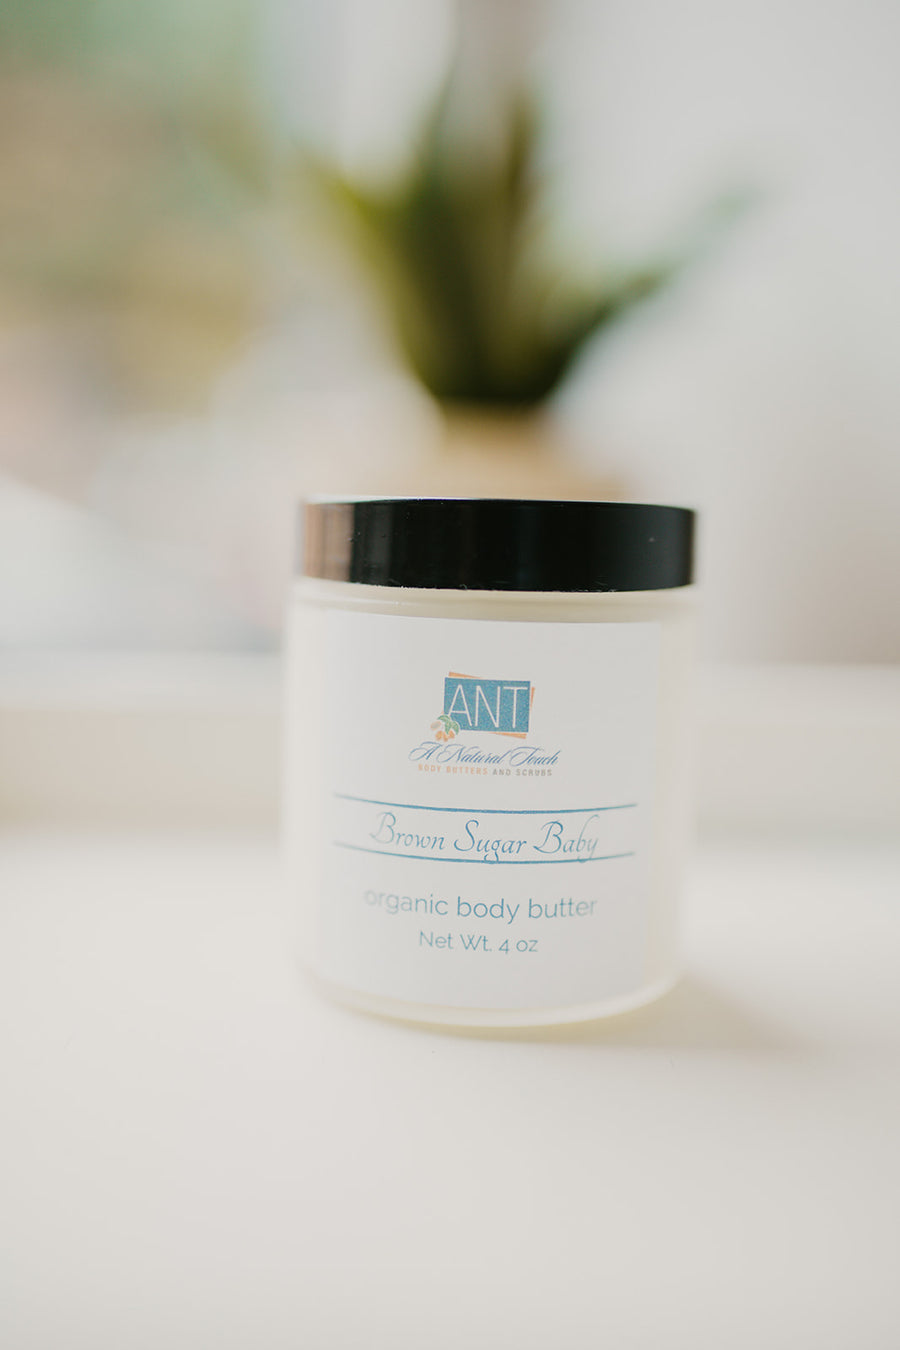 Brown Sugar Baby Body Butter